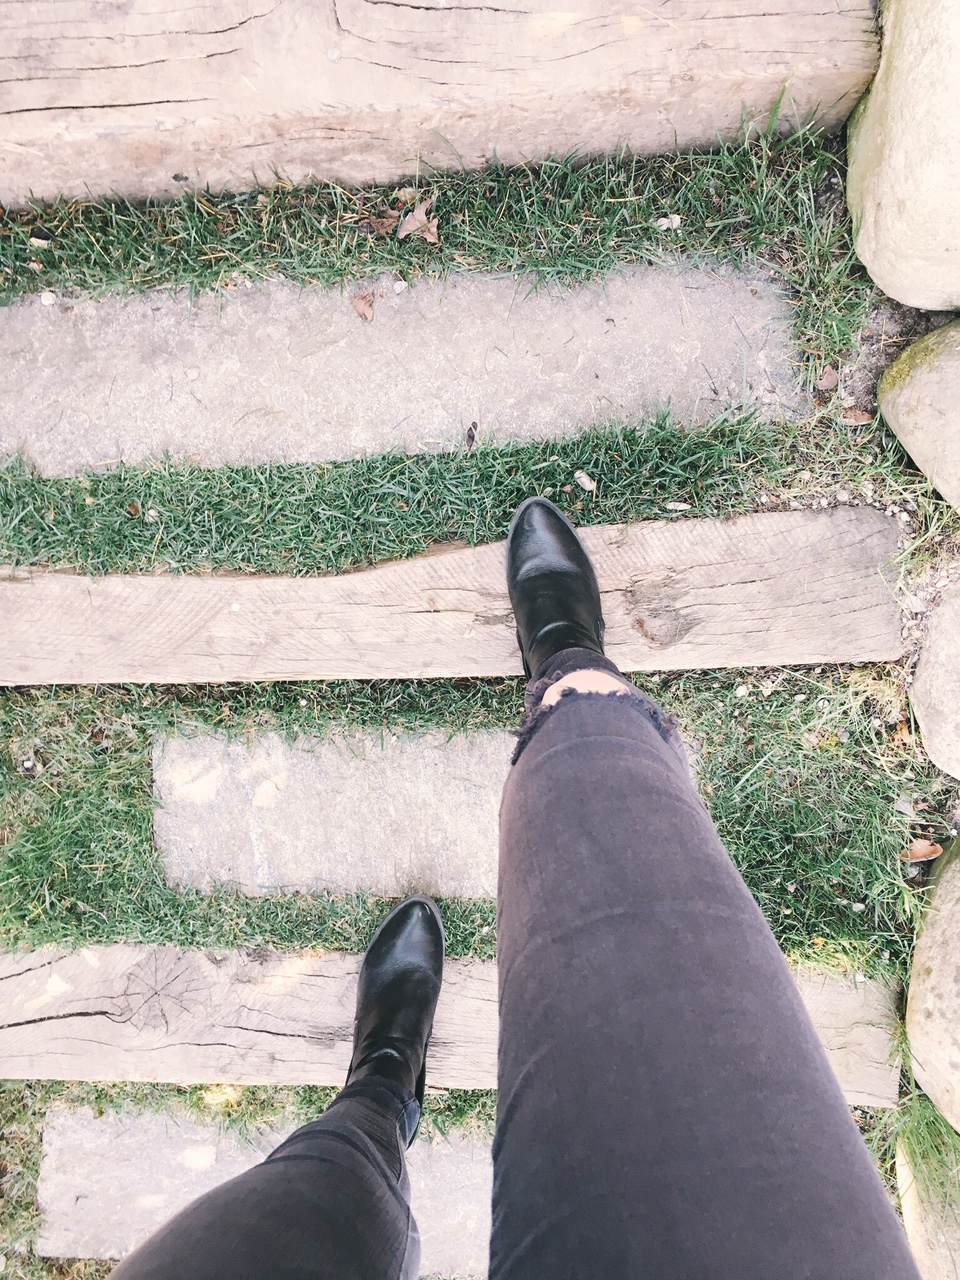 Black jeans ripped knee and black booties walking up wood and grass stairs